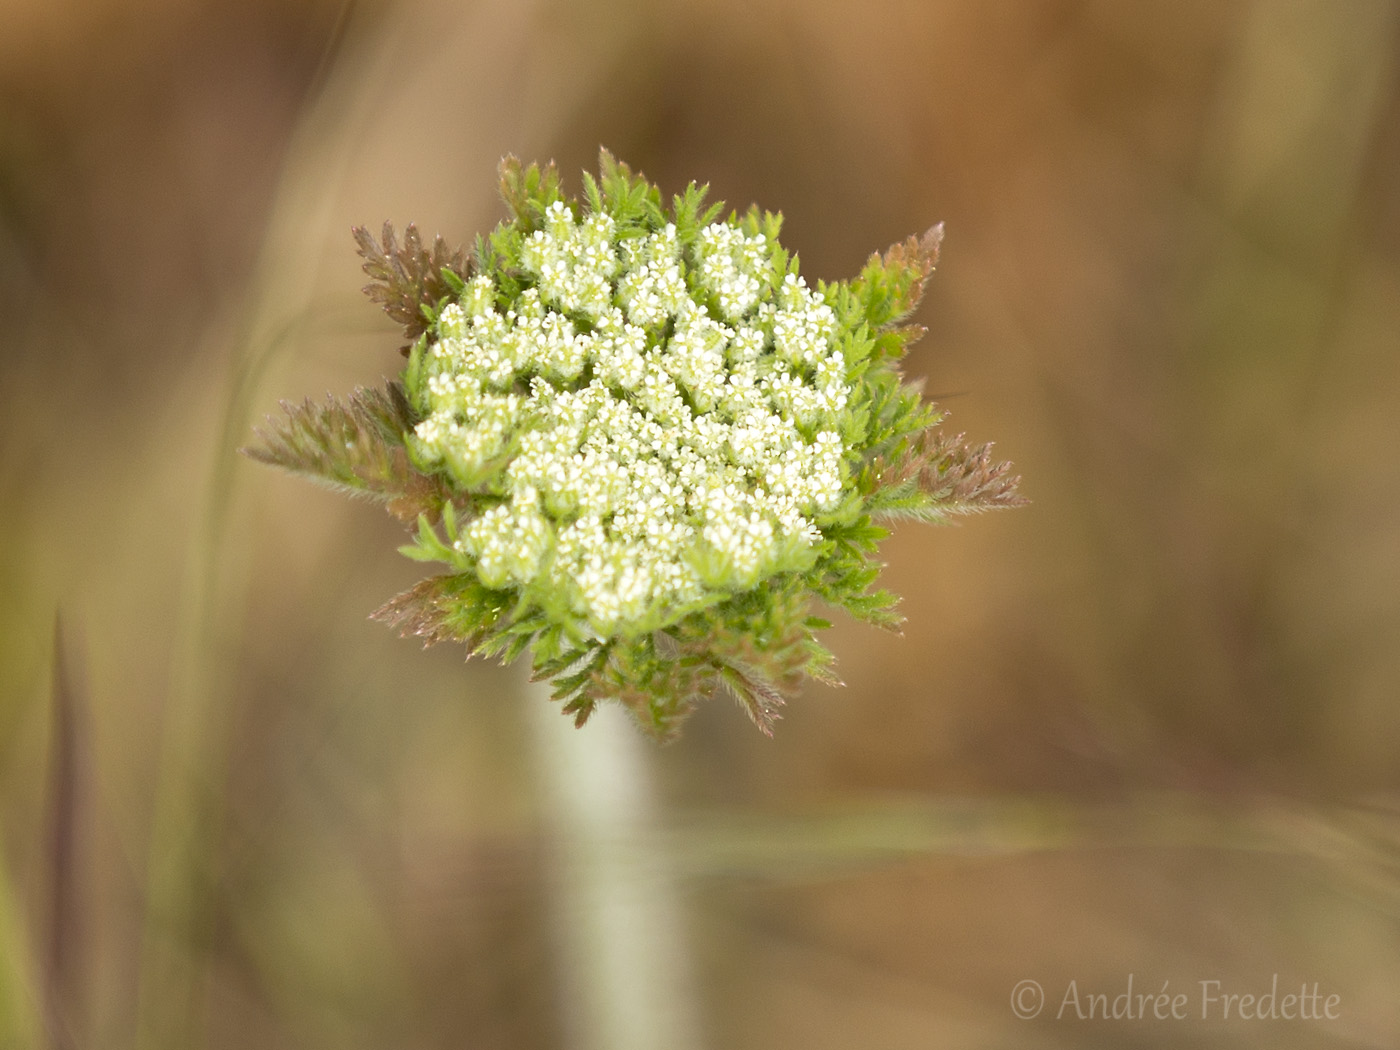 Achillea blossom, about to open. Photo by Andrée Fredette